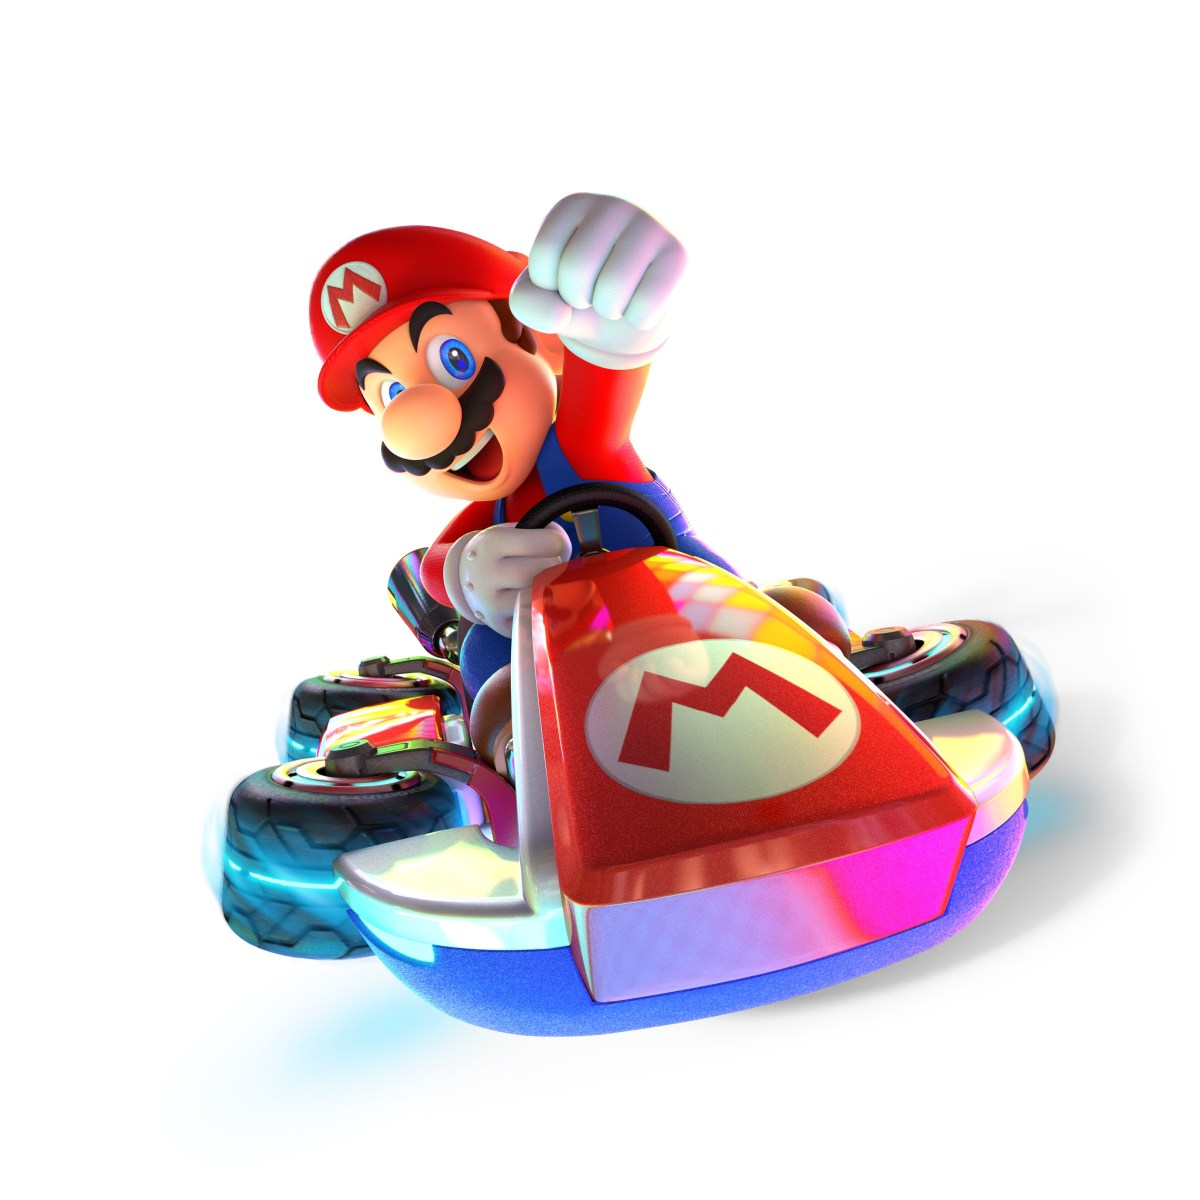 Mario Kart 8 Deluxe North American Open begins 22nd September